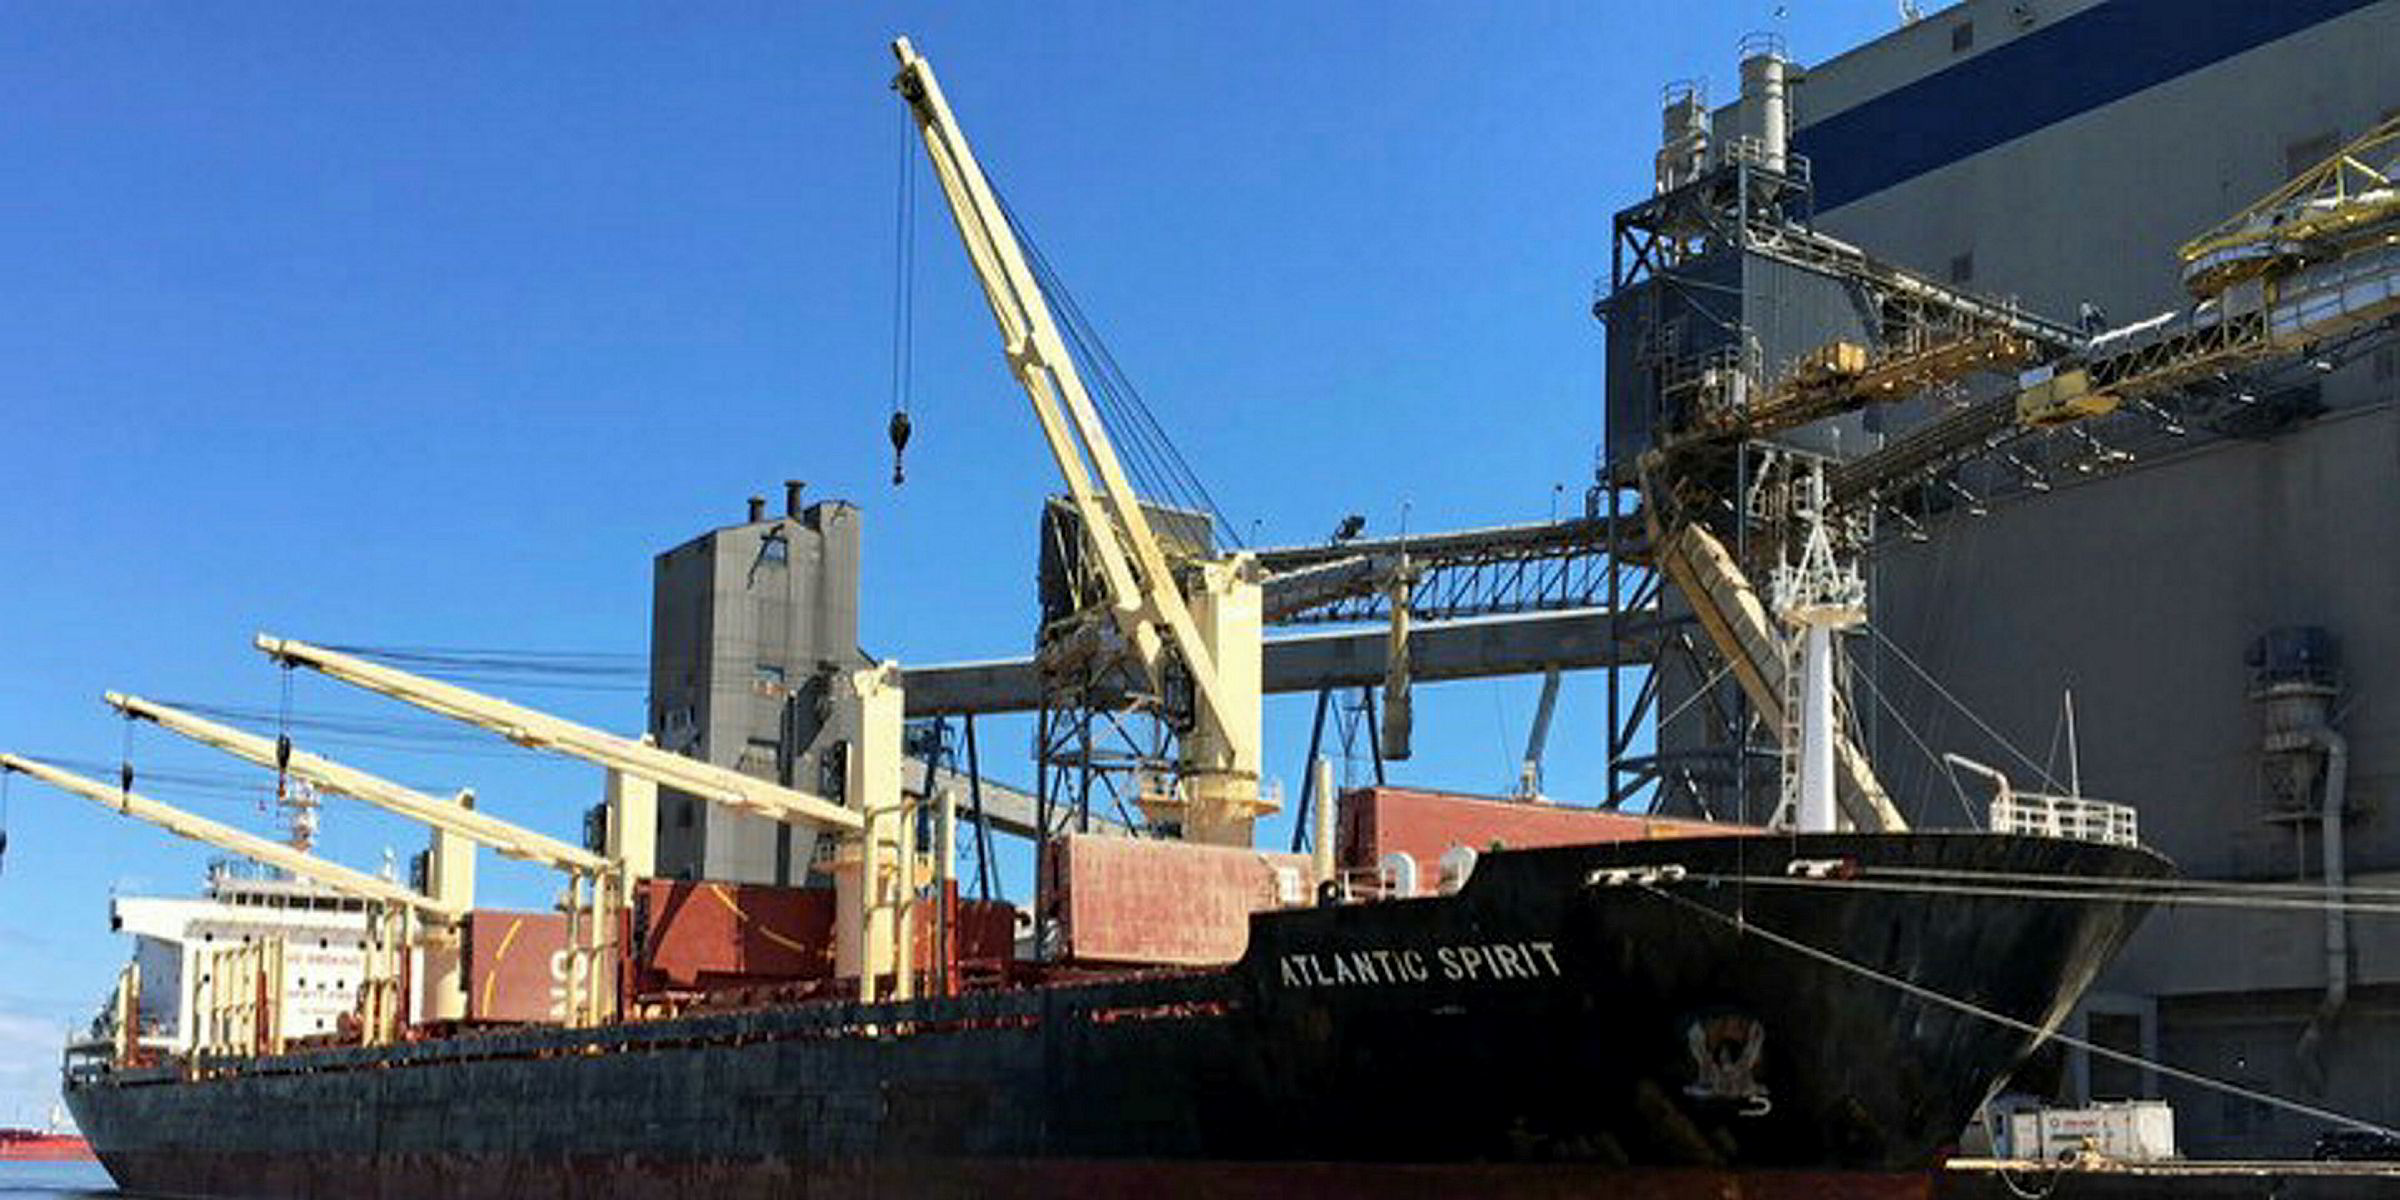 Asia Maritime Pacific and Fenwick Shipping tie the knot